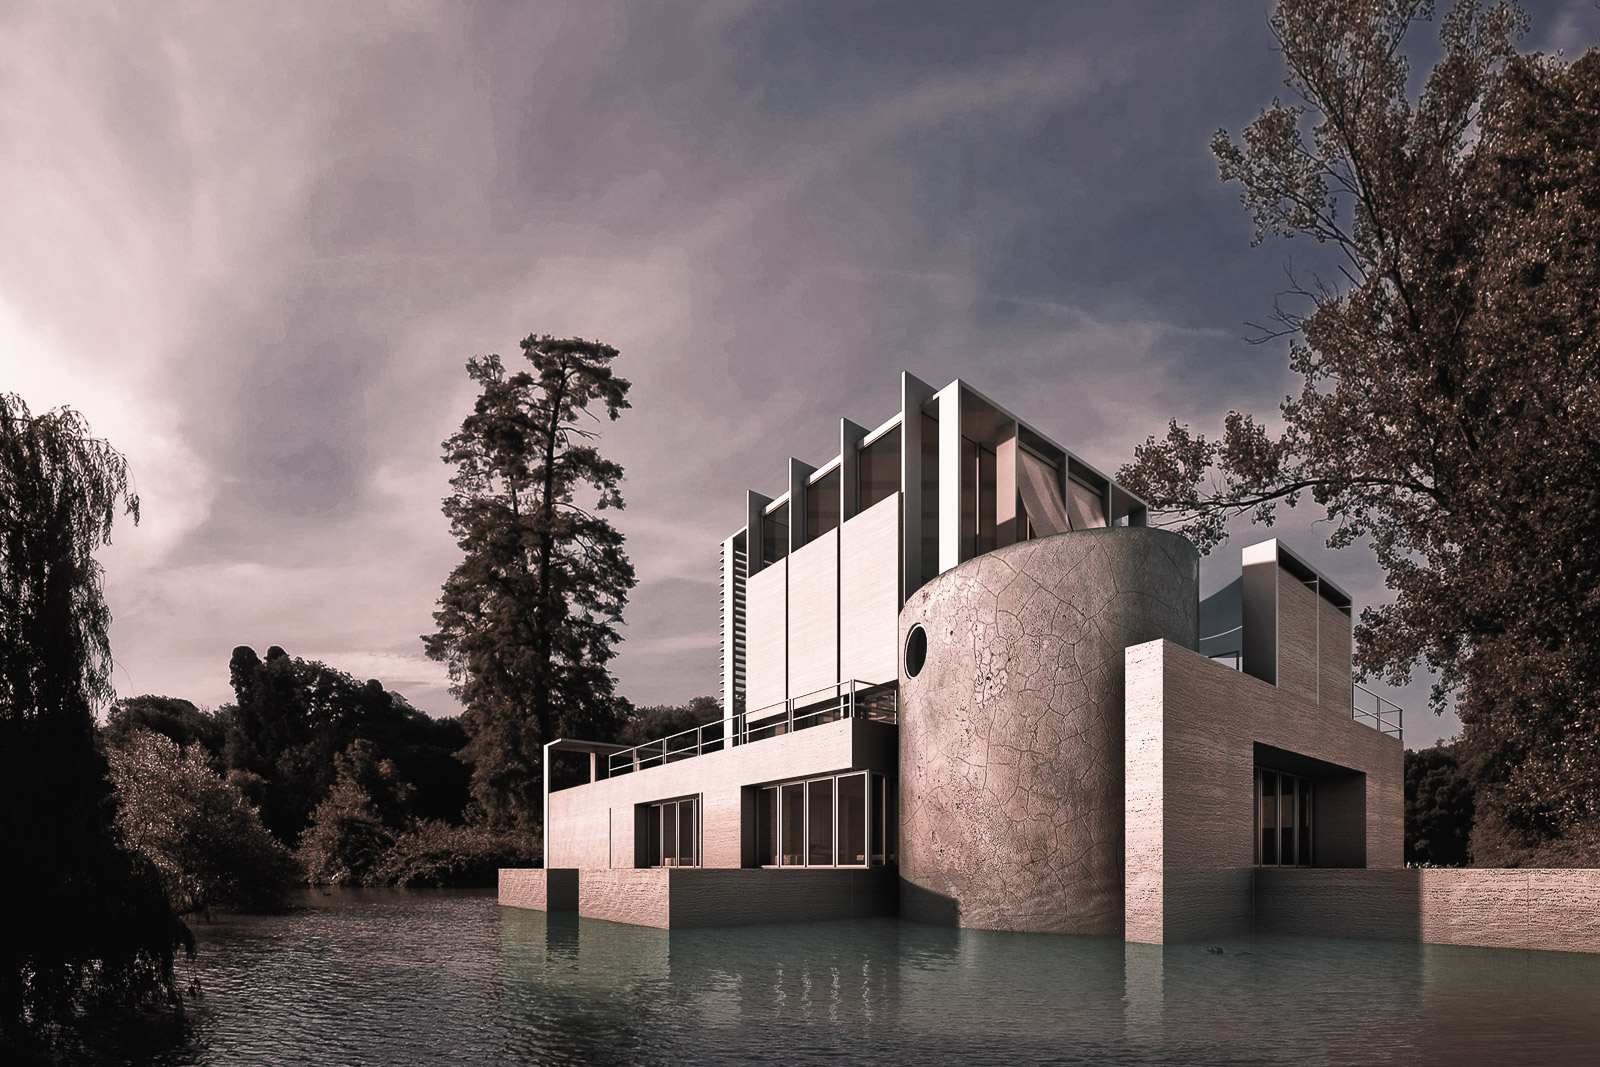 Antonino Cardillo, Max's House in a Small Lake, Nimes, 2008. CGI: Antonino Cardillo